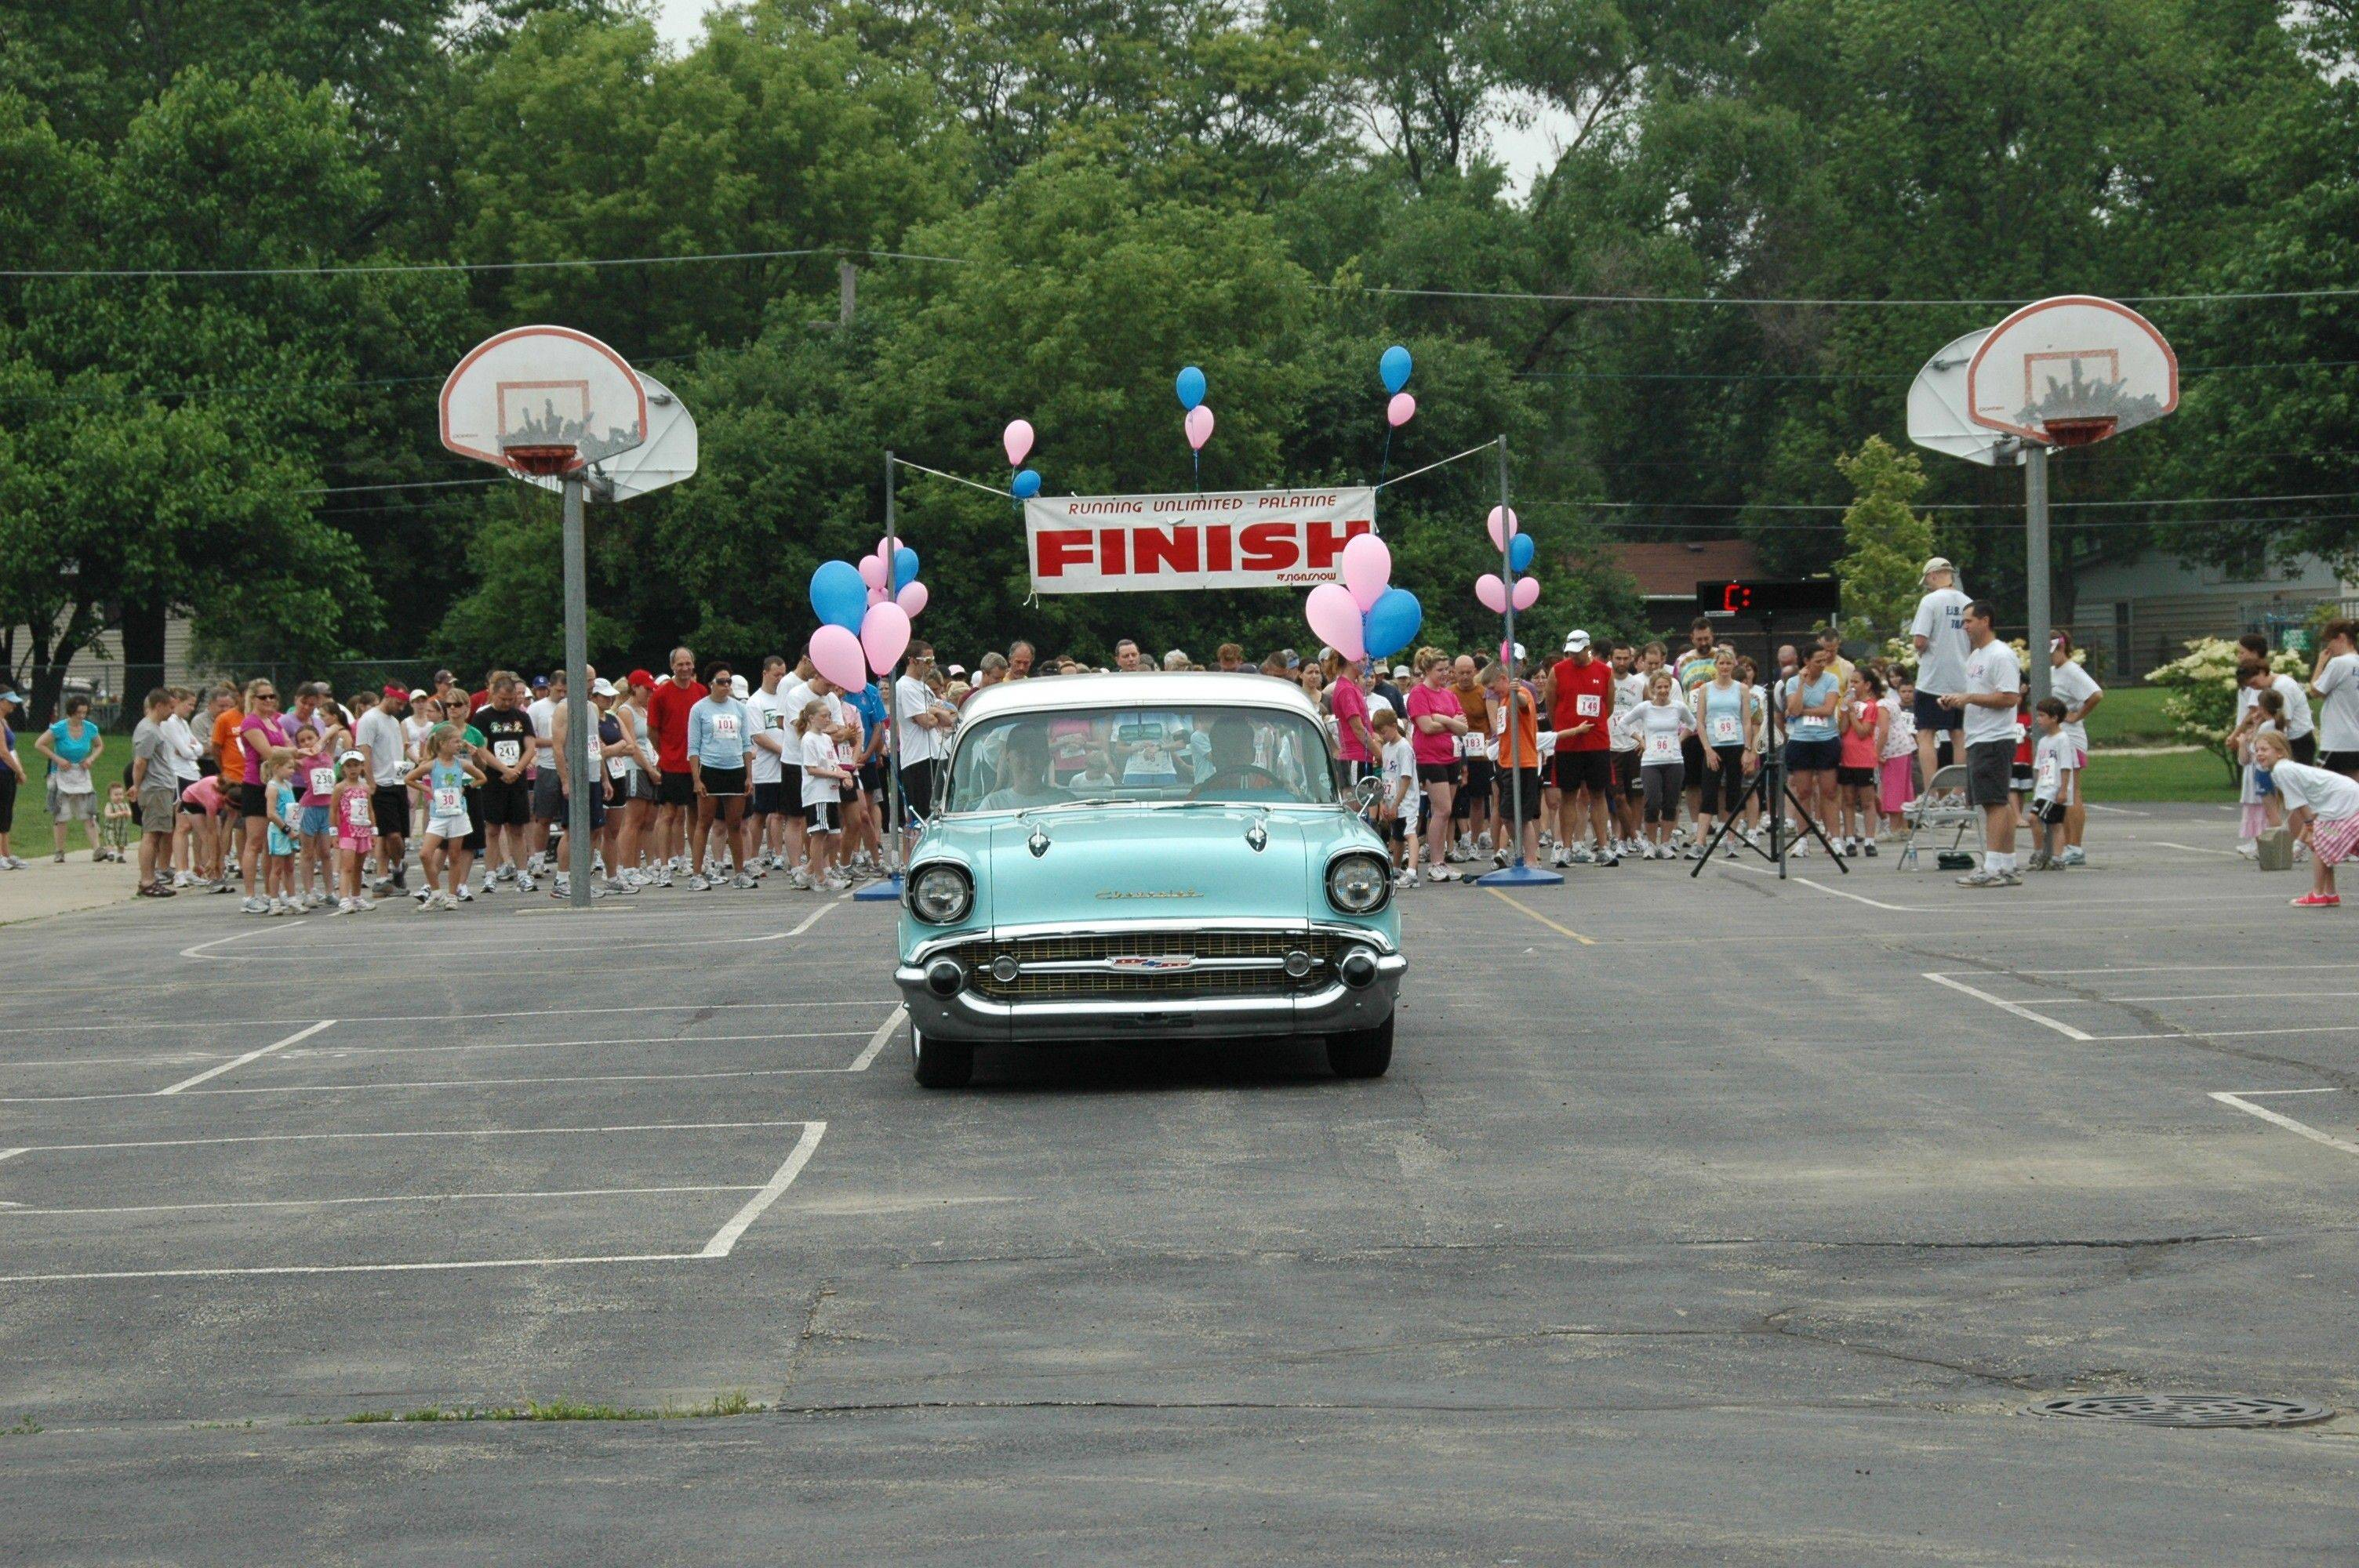 A second F.A.B. 5K for breast cancer research will be held Saturday, June 11, at Patton School in Arlington Heights.